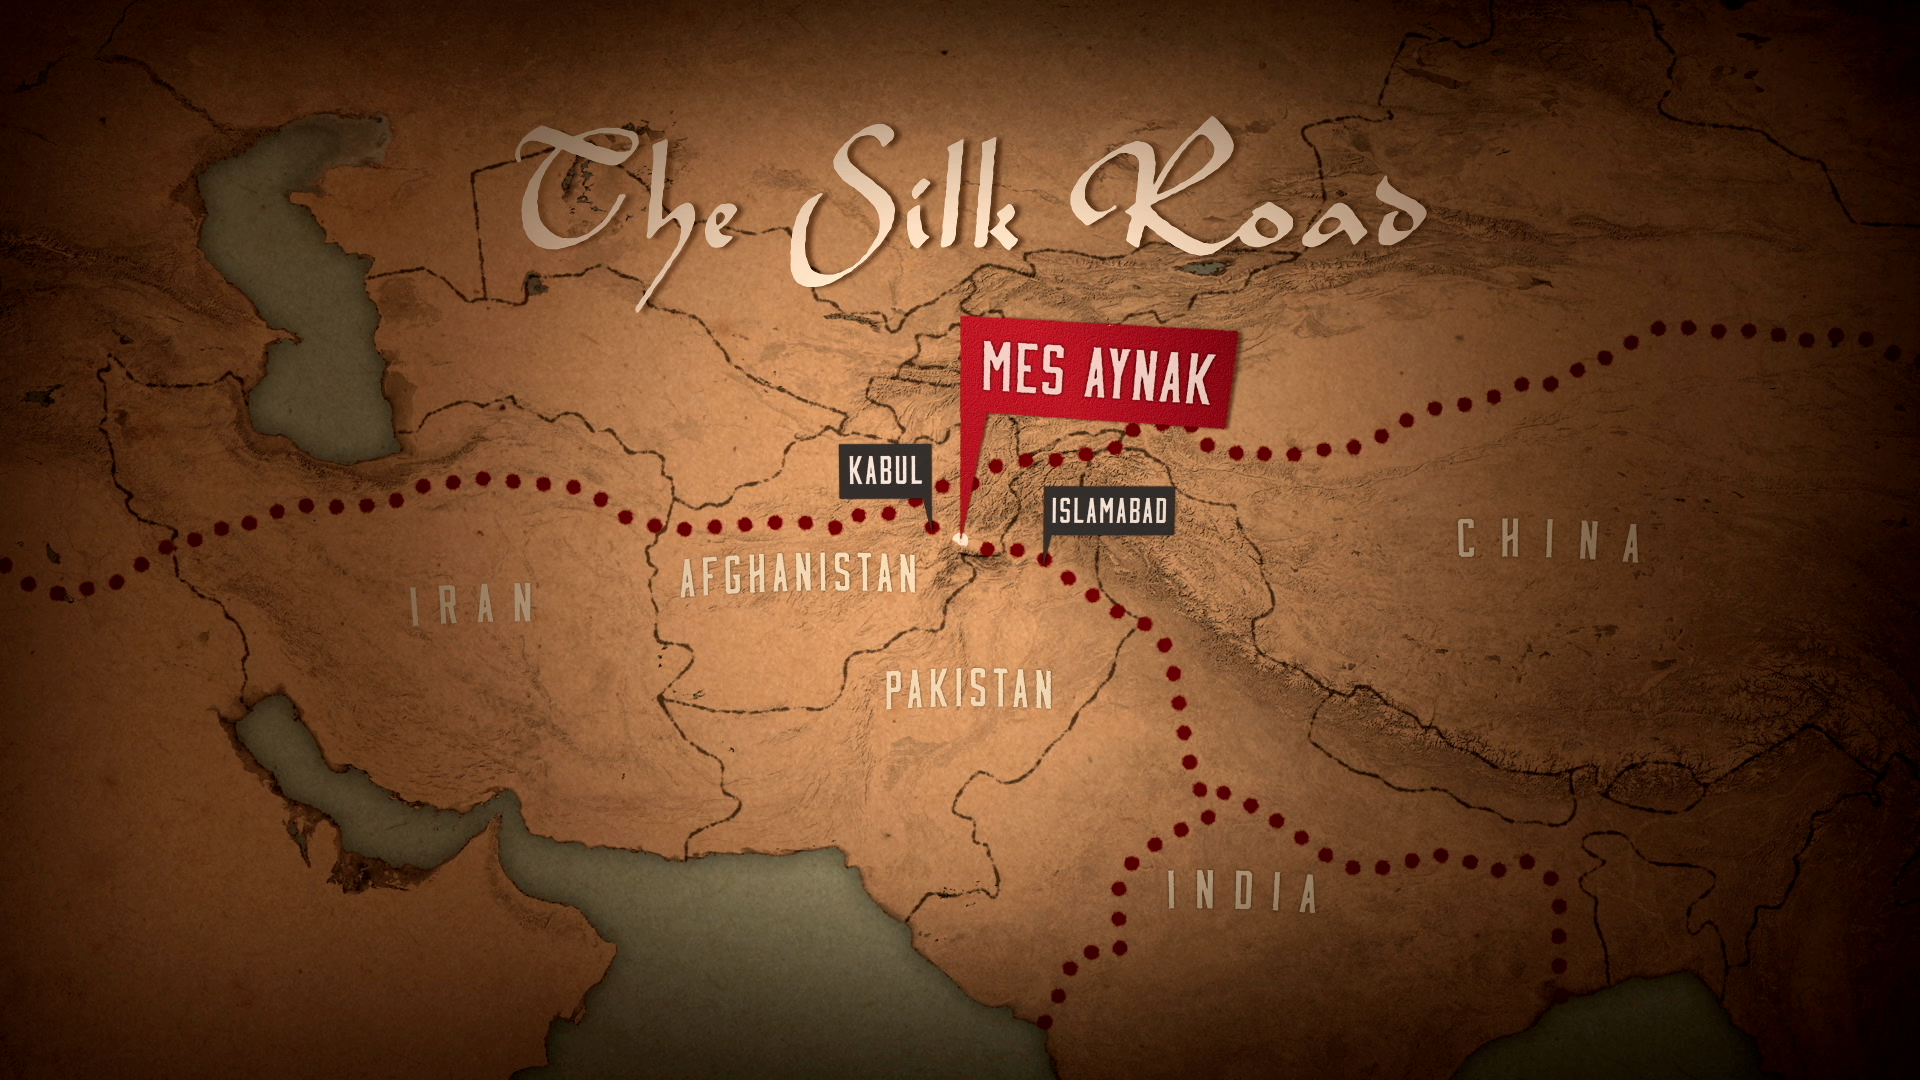 Mes Aynak was once located at the heart of the ancient Silk Road, an interconnected series of trade and migration routes that connected together the then-known world.